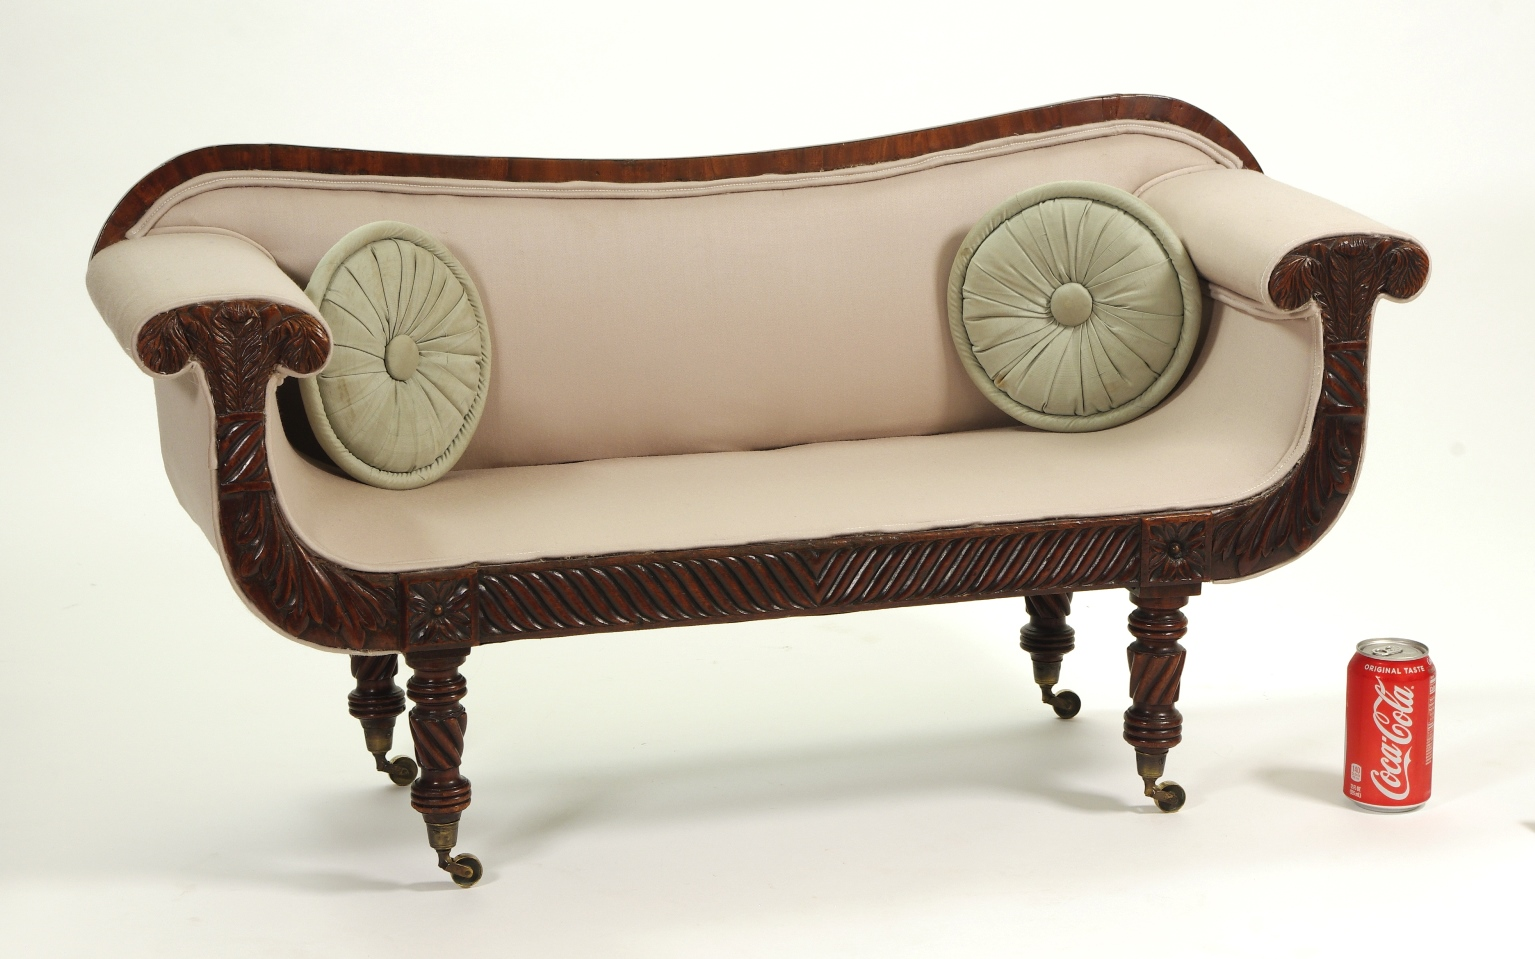 View 5: Regency Mahogany Child's Sofa, c. 1820